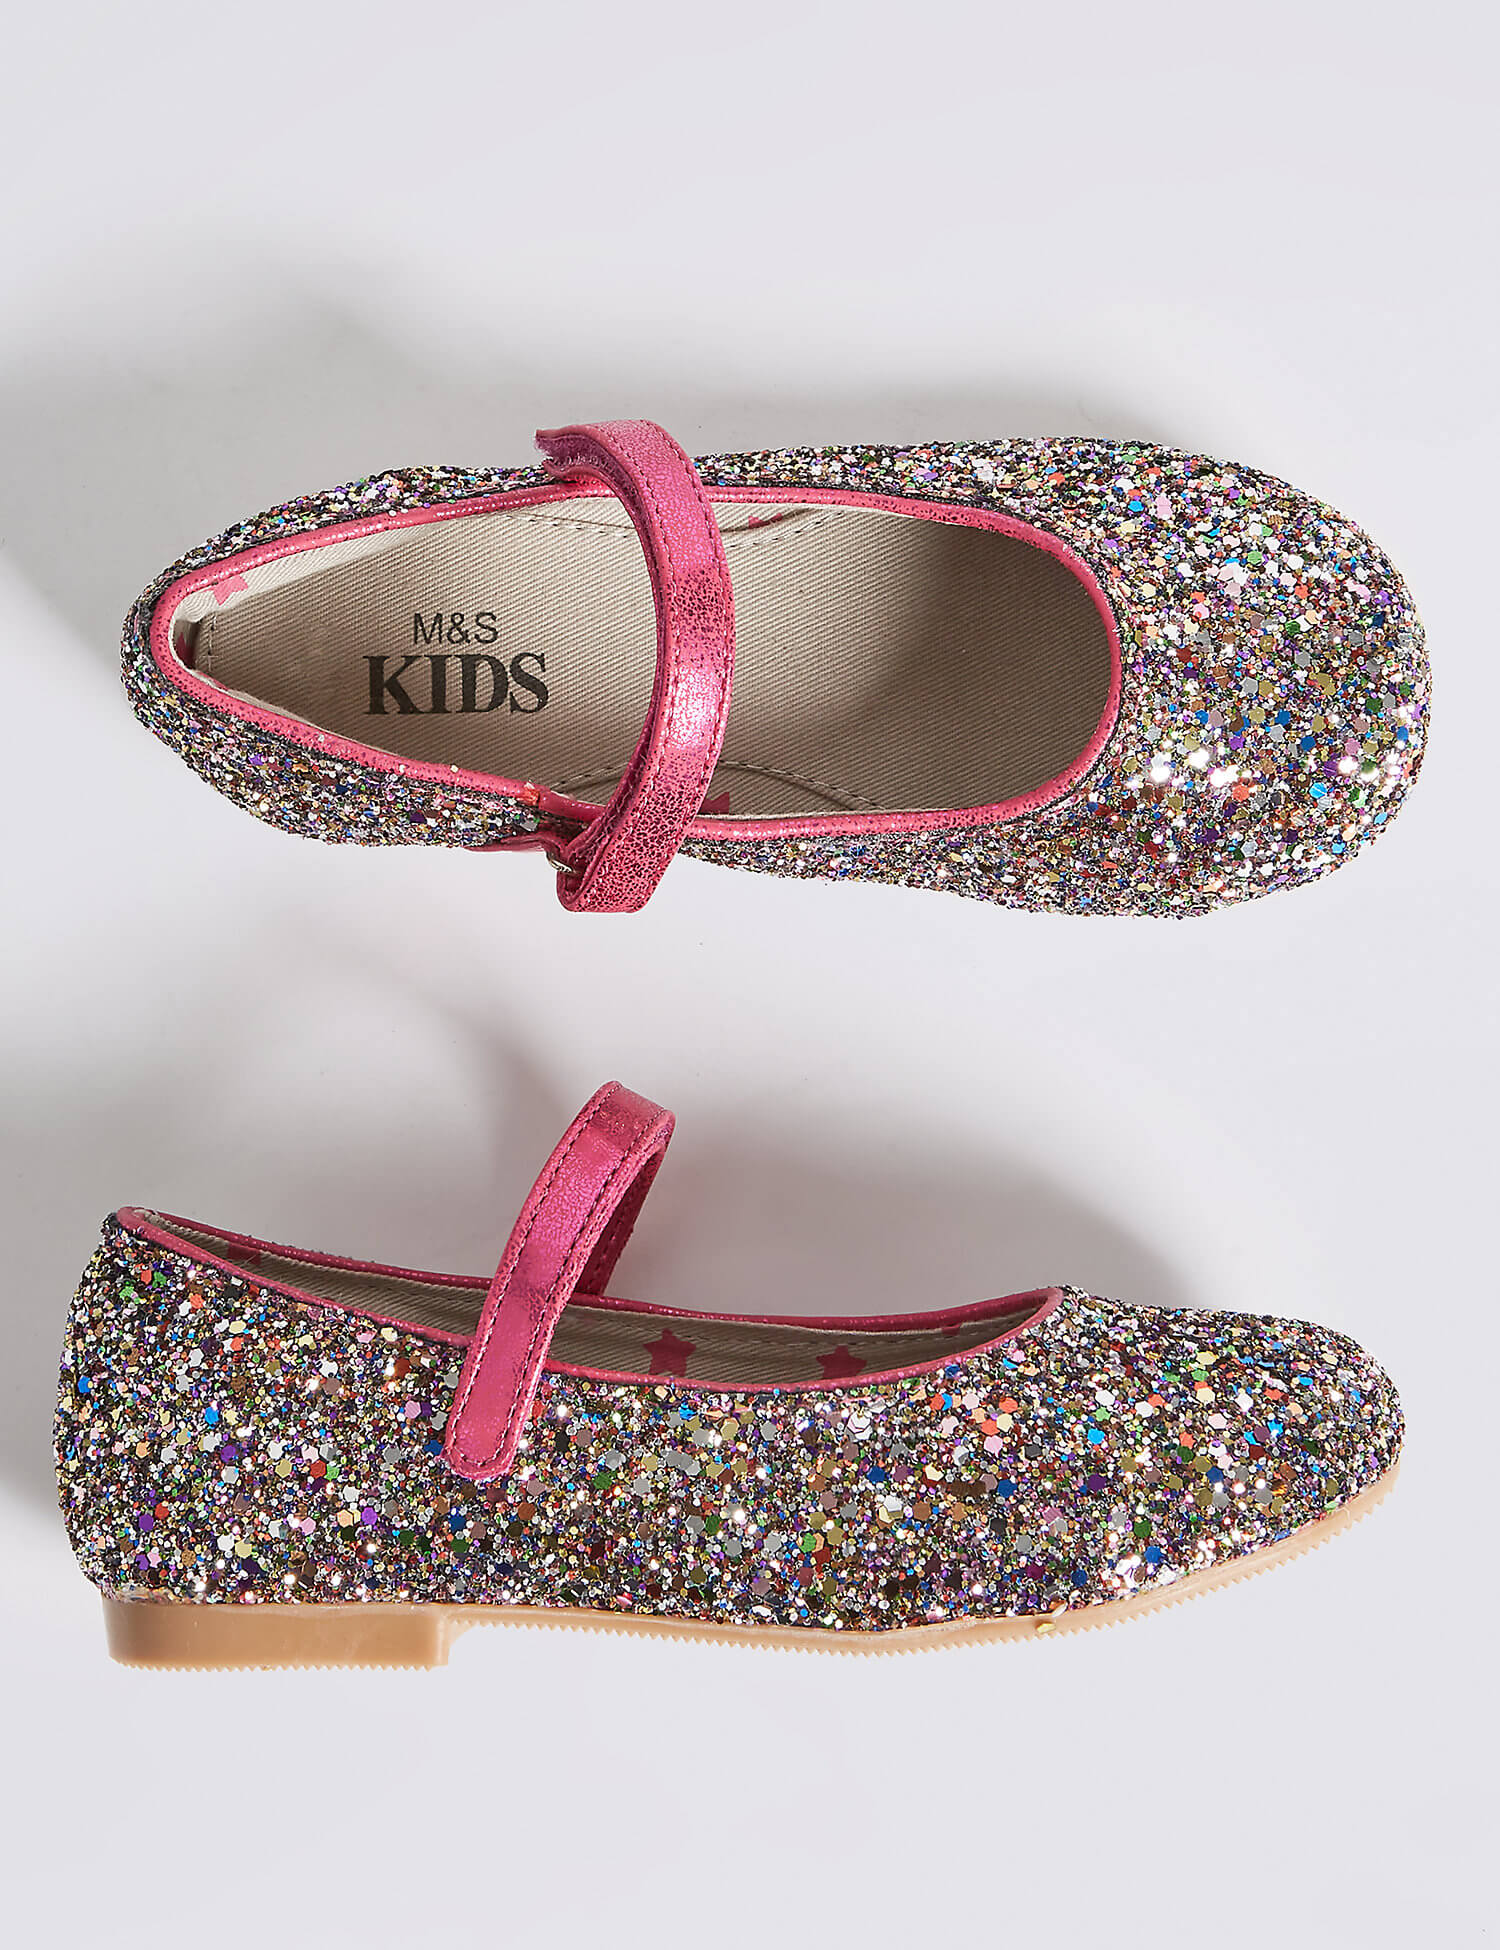 Super Cute Vegan Kids Shoes Are Now at Marks & Spencer